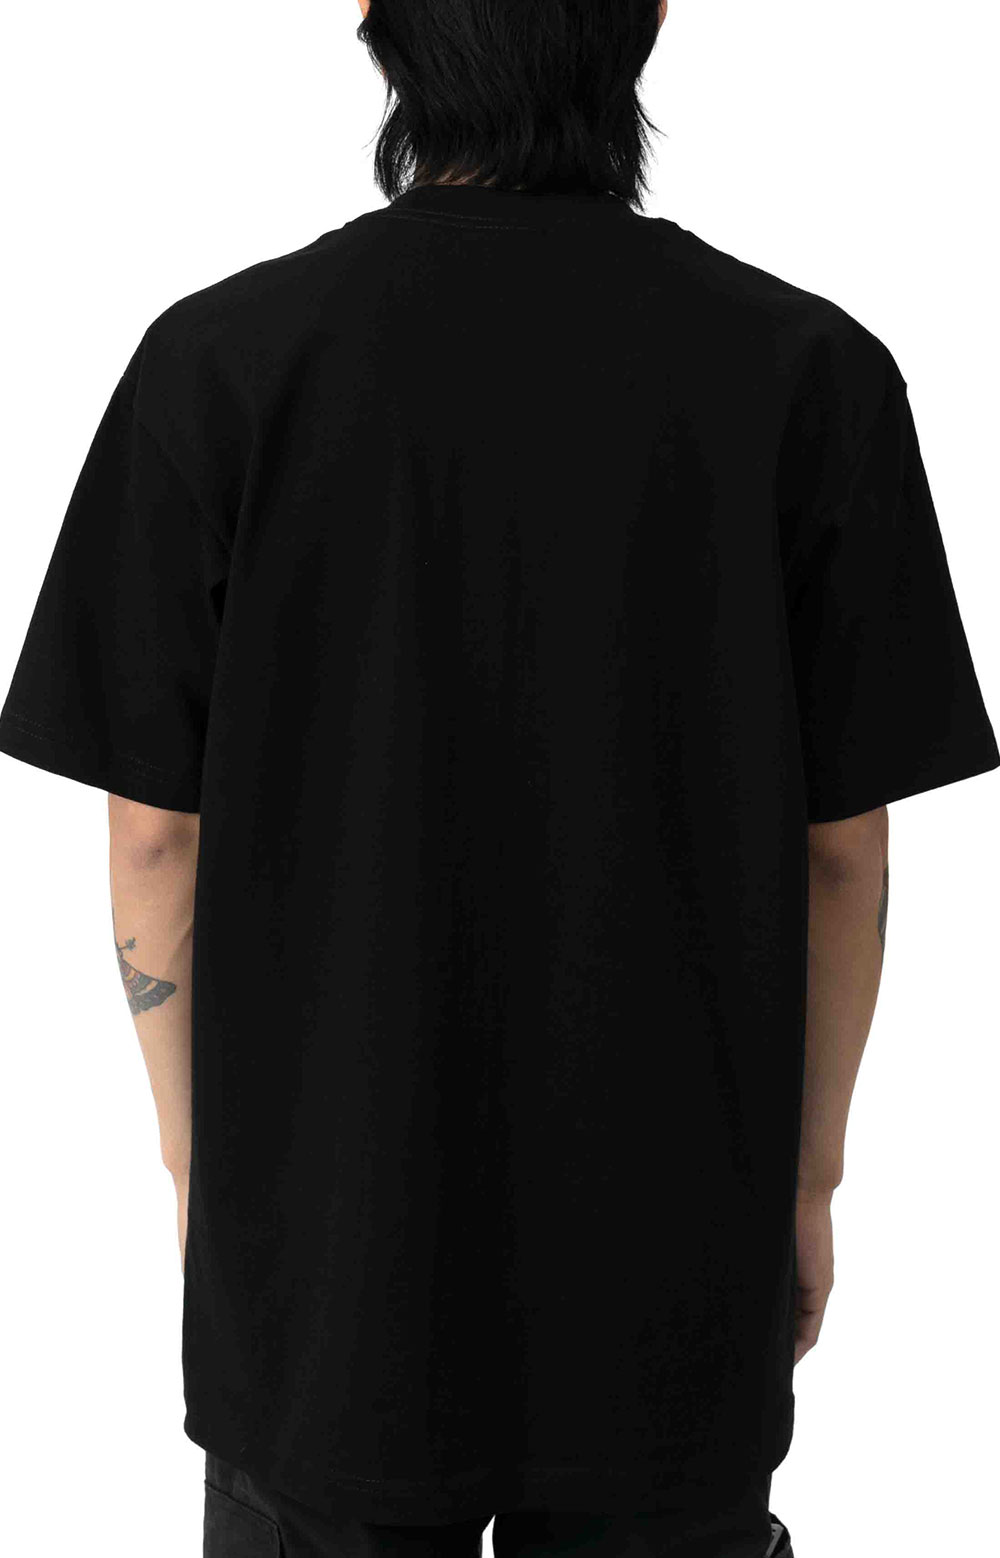 Max Heavyweight S/S T-Shirt - Black 3